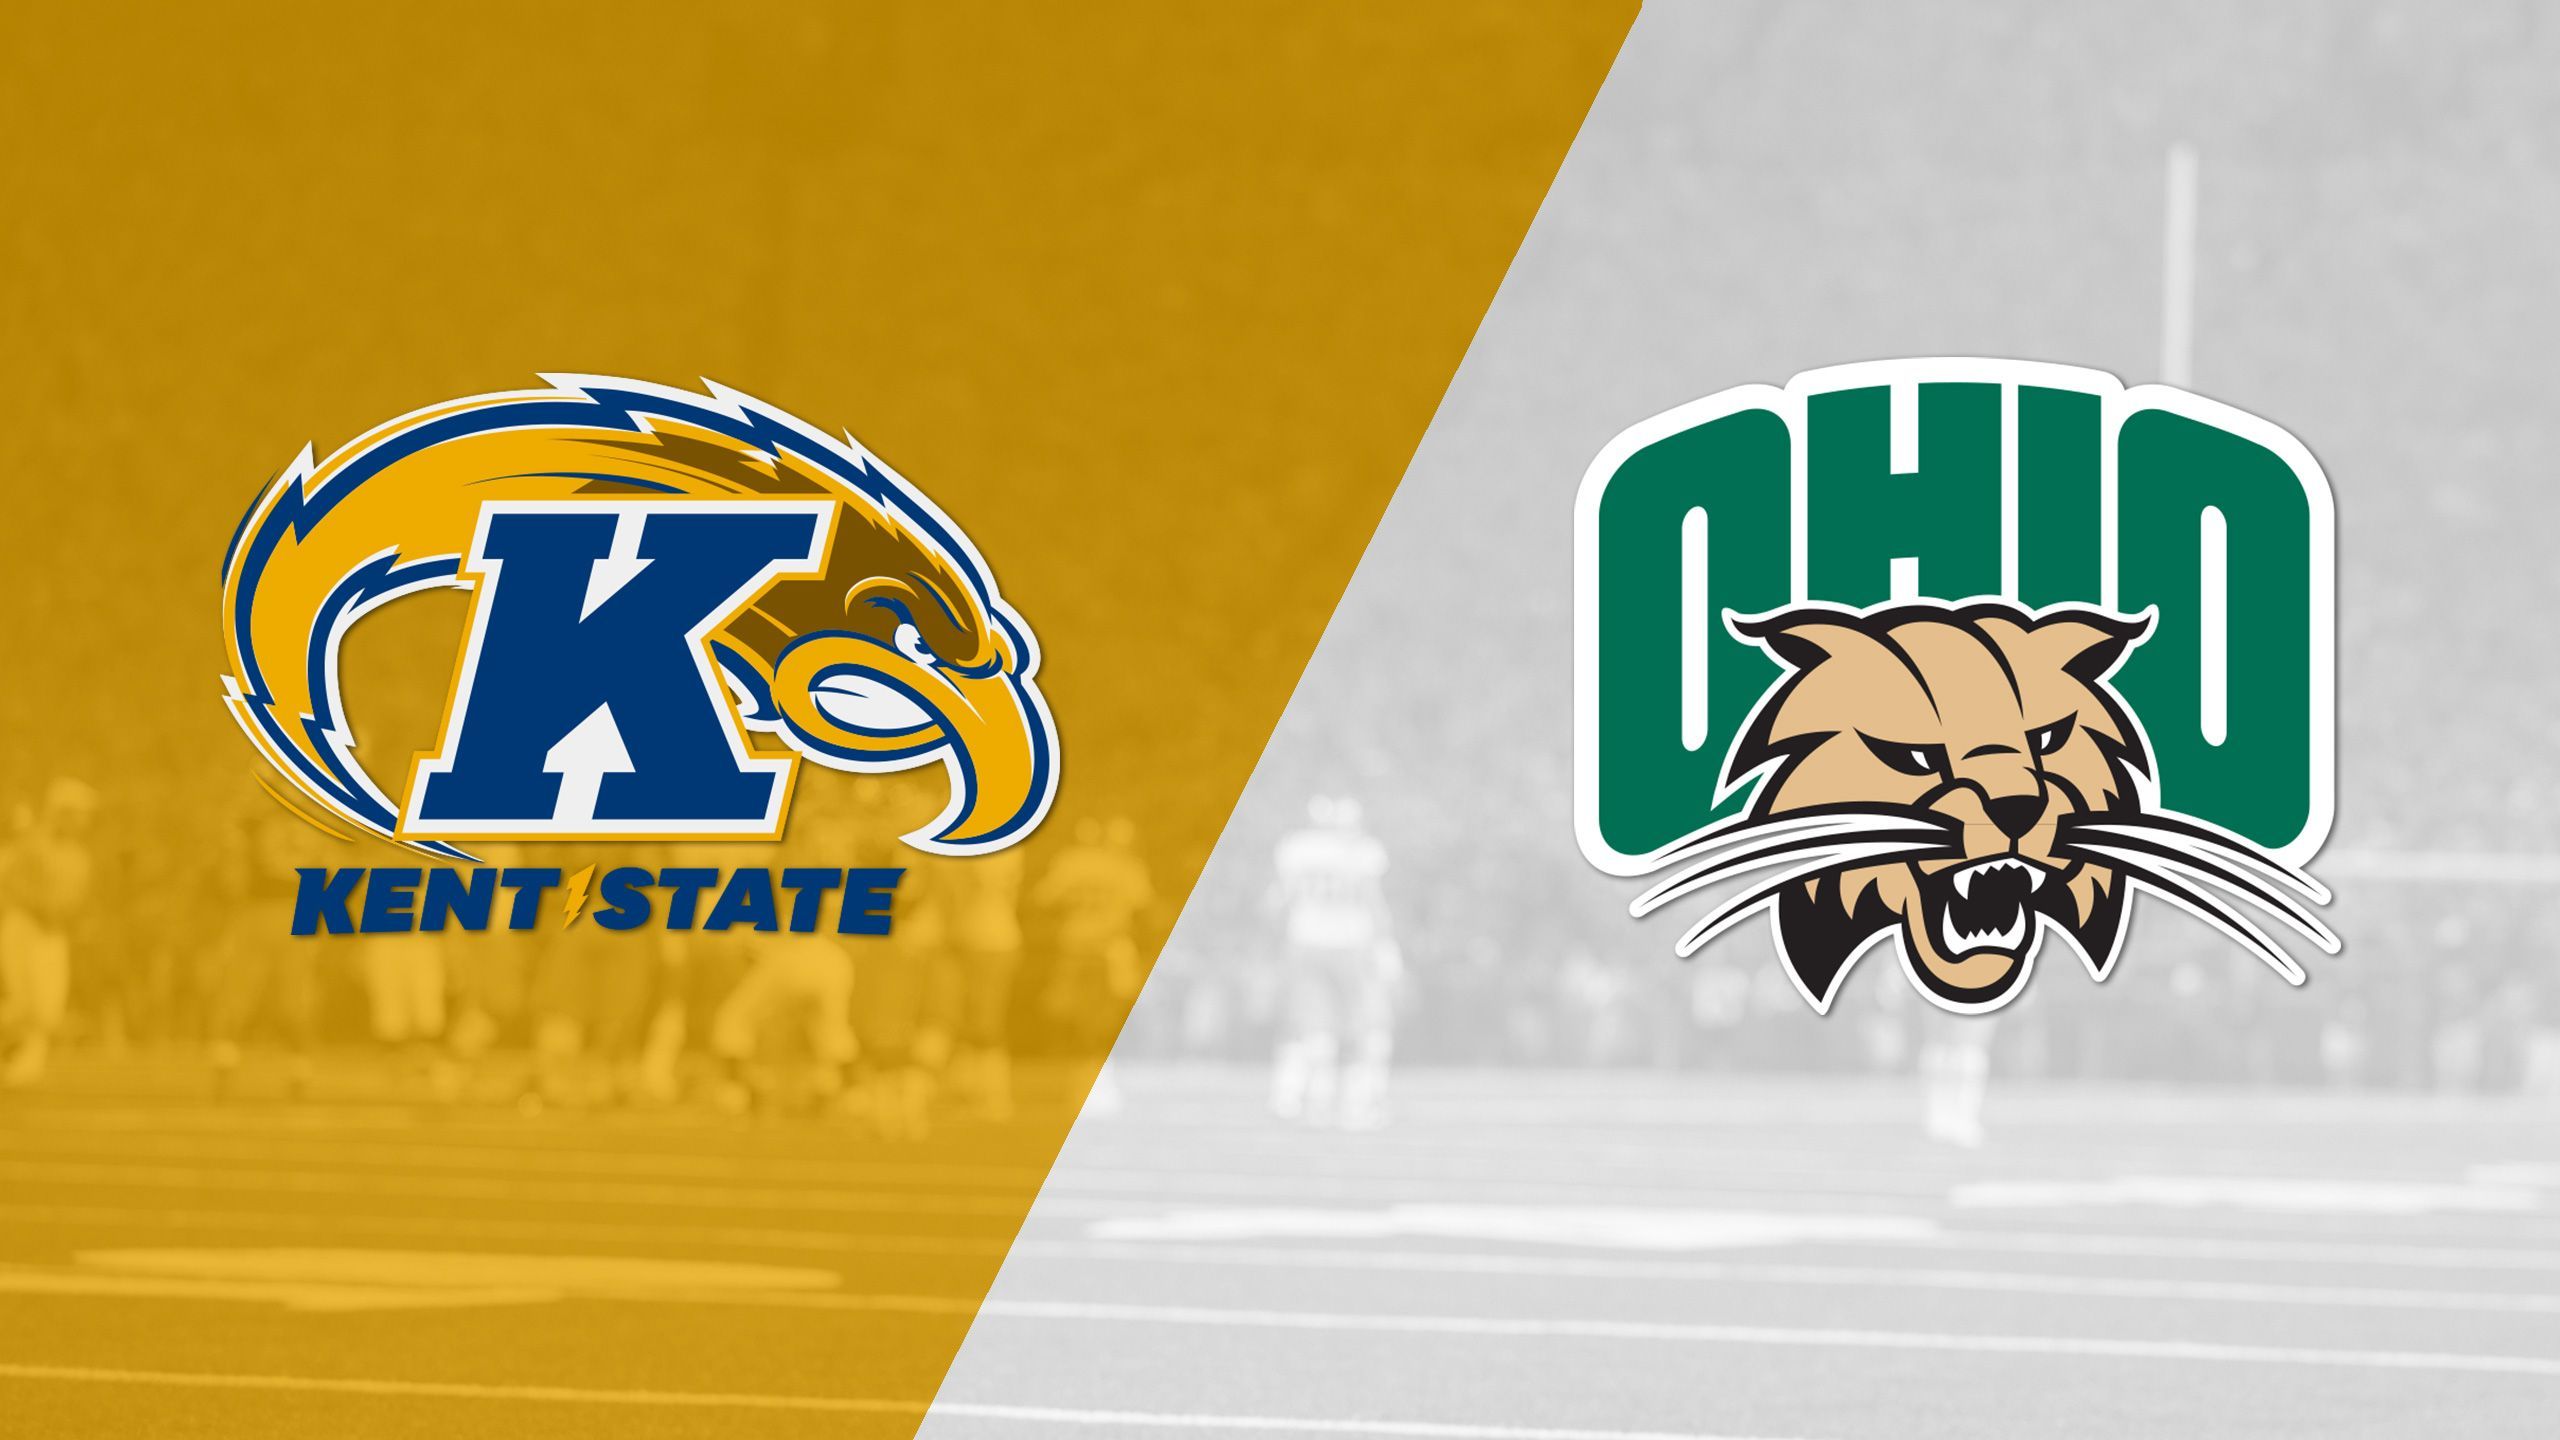 Kent State vs. Ohio (Football)